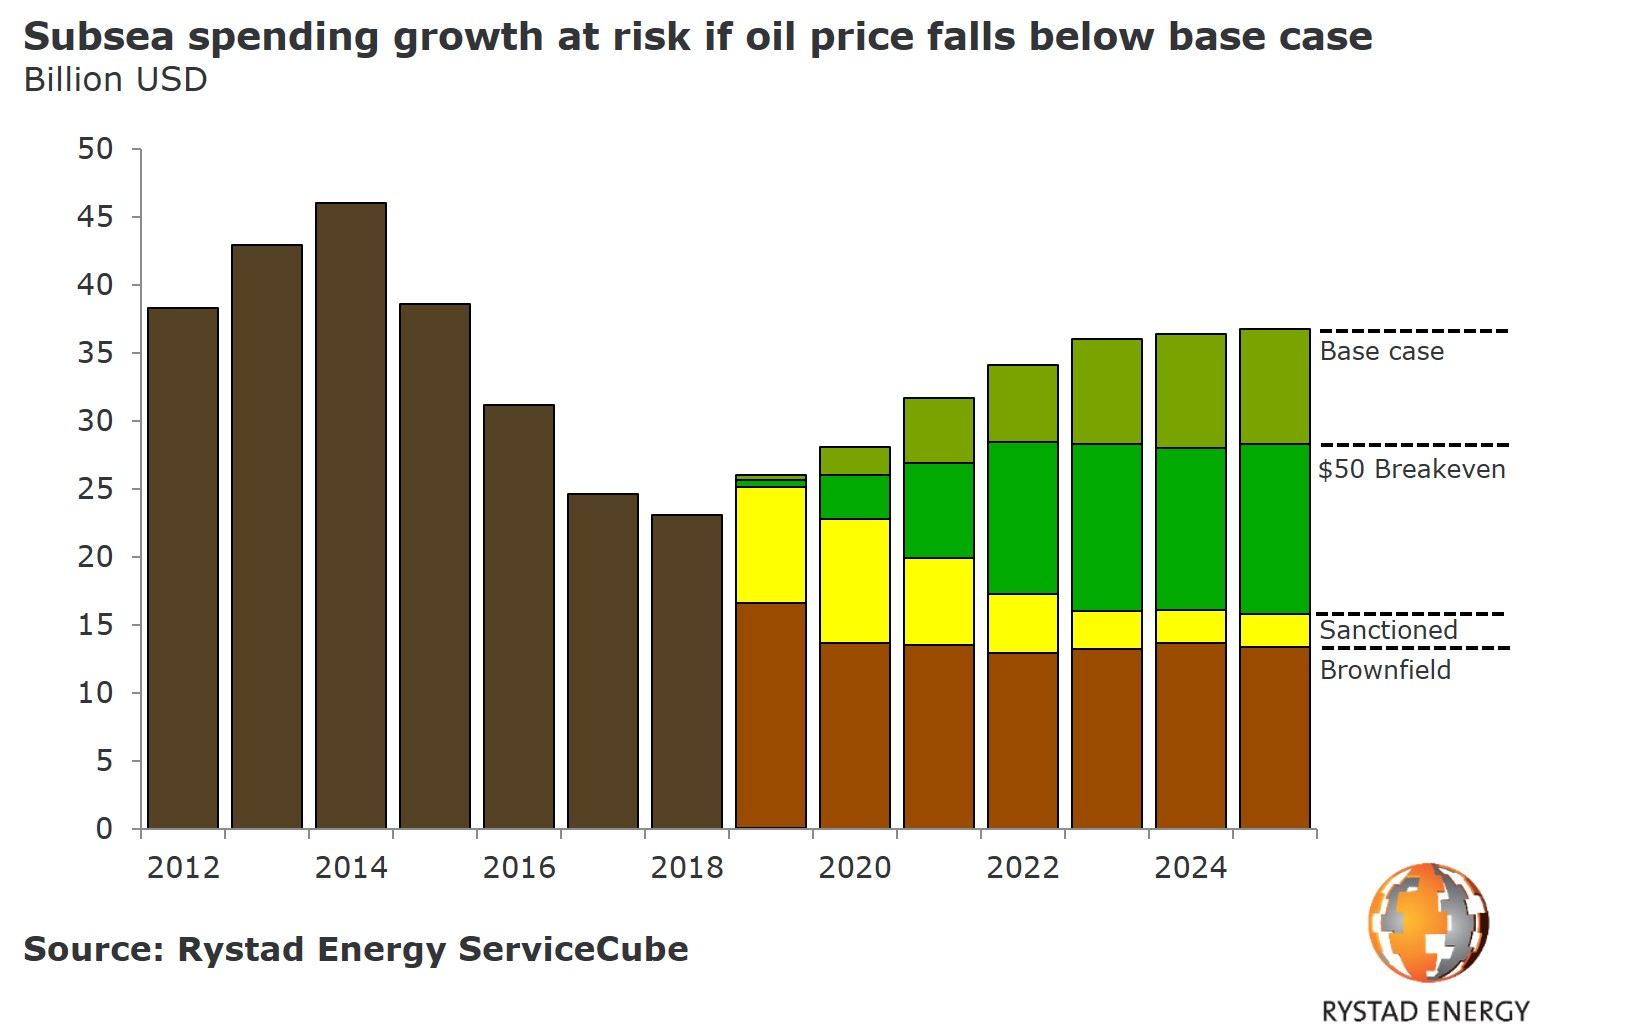 20190822_PR Chart Bar chart subsea spending growth at risk if oil price falls below base case 2012 2025.jpg